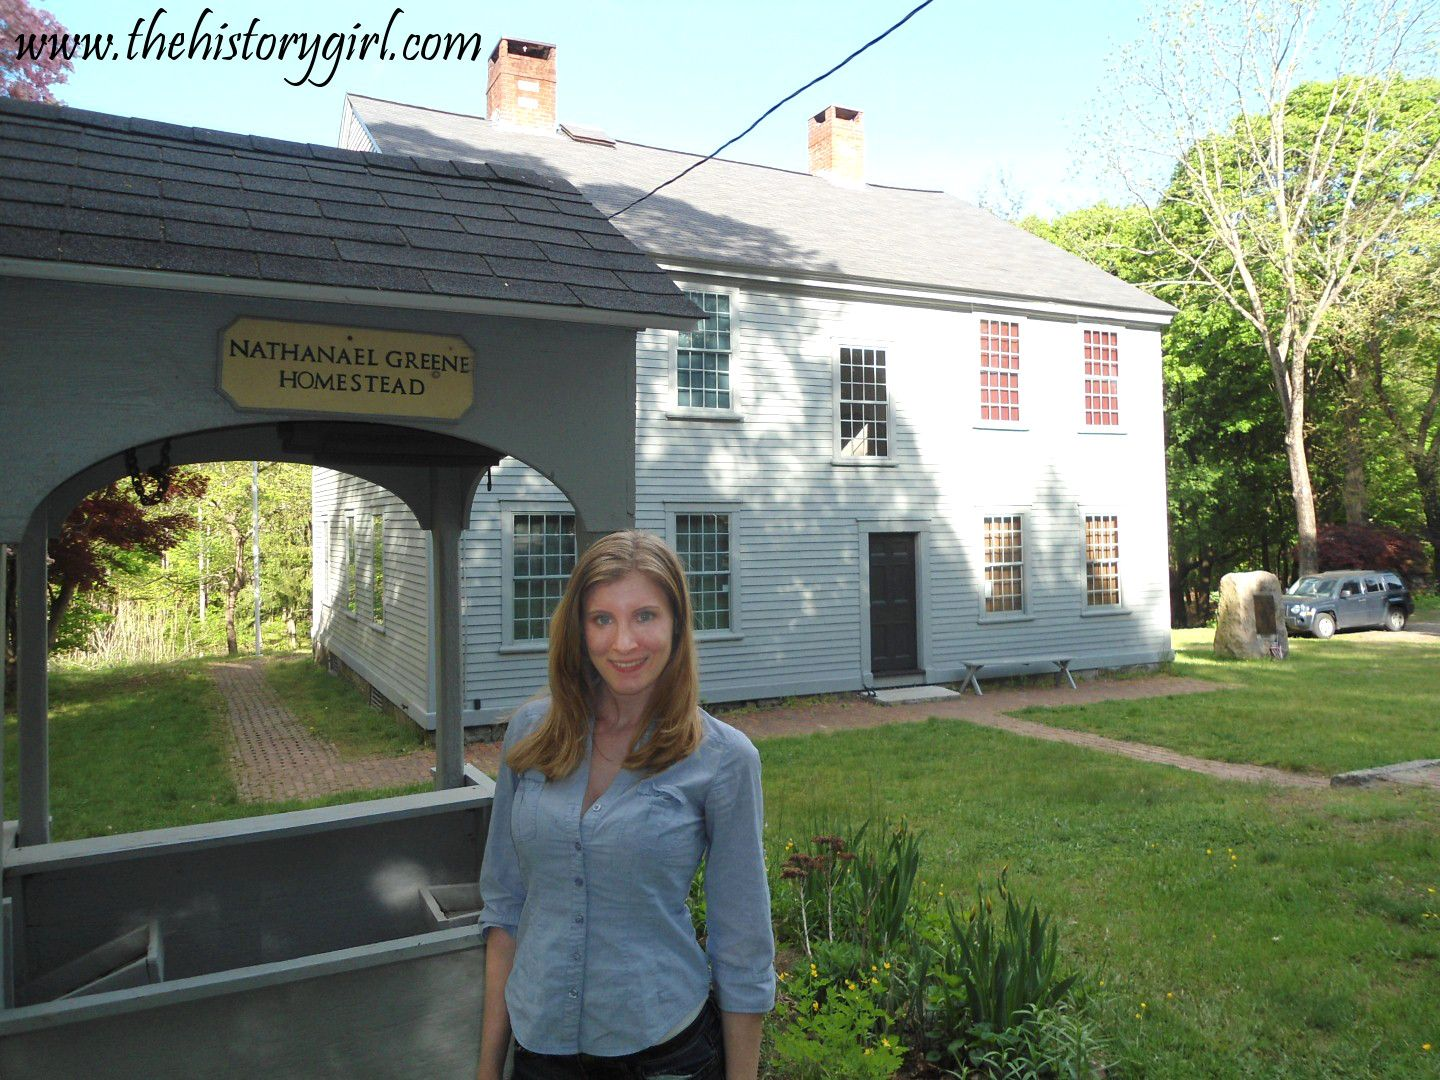 the nathanael greene homestead in coventry ri originally known as